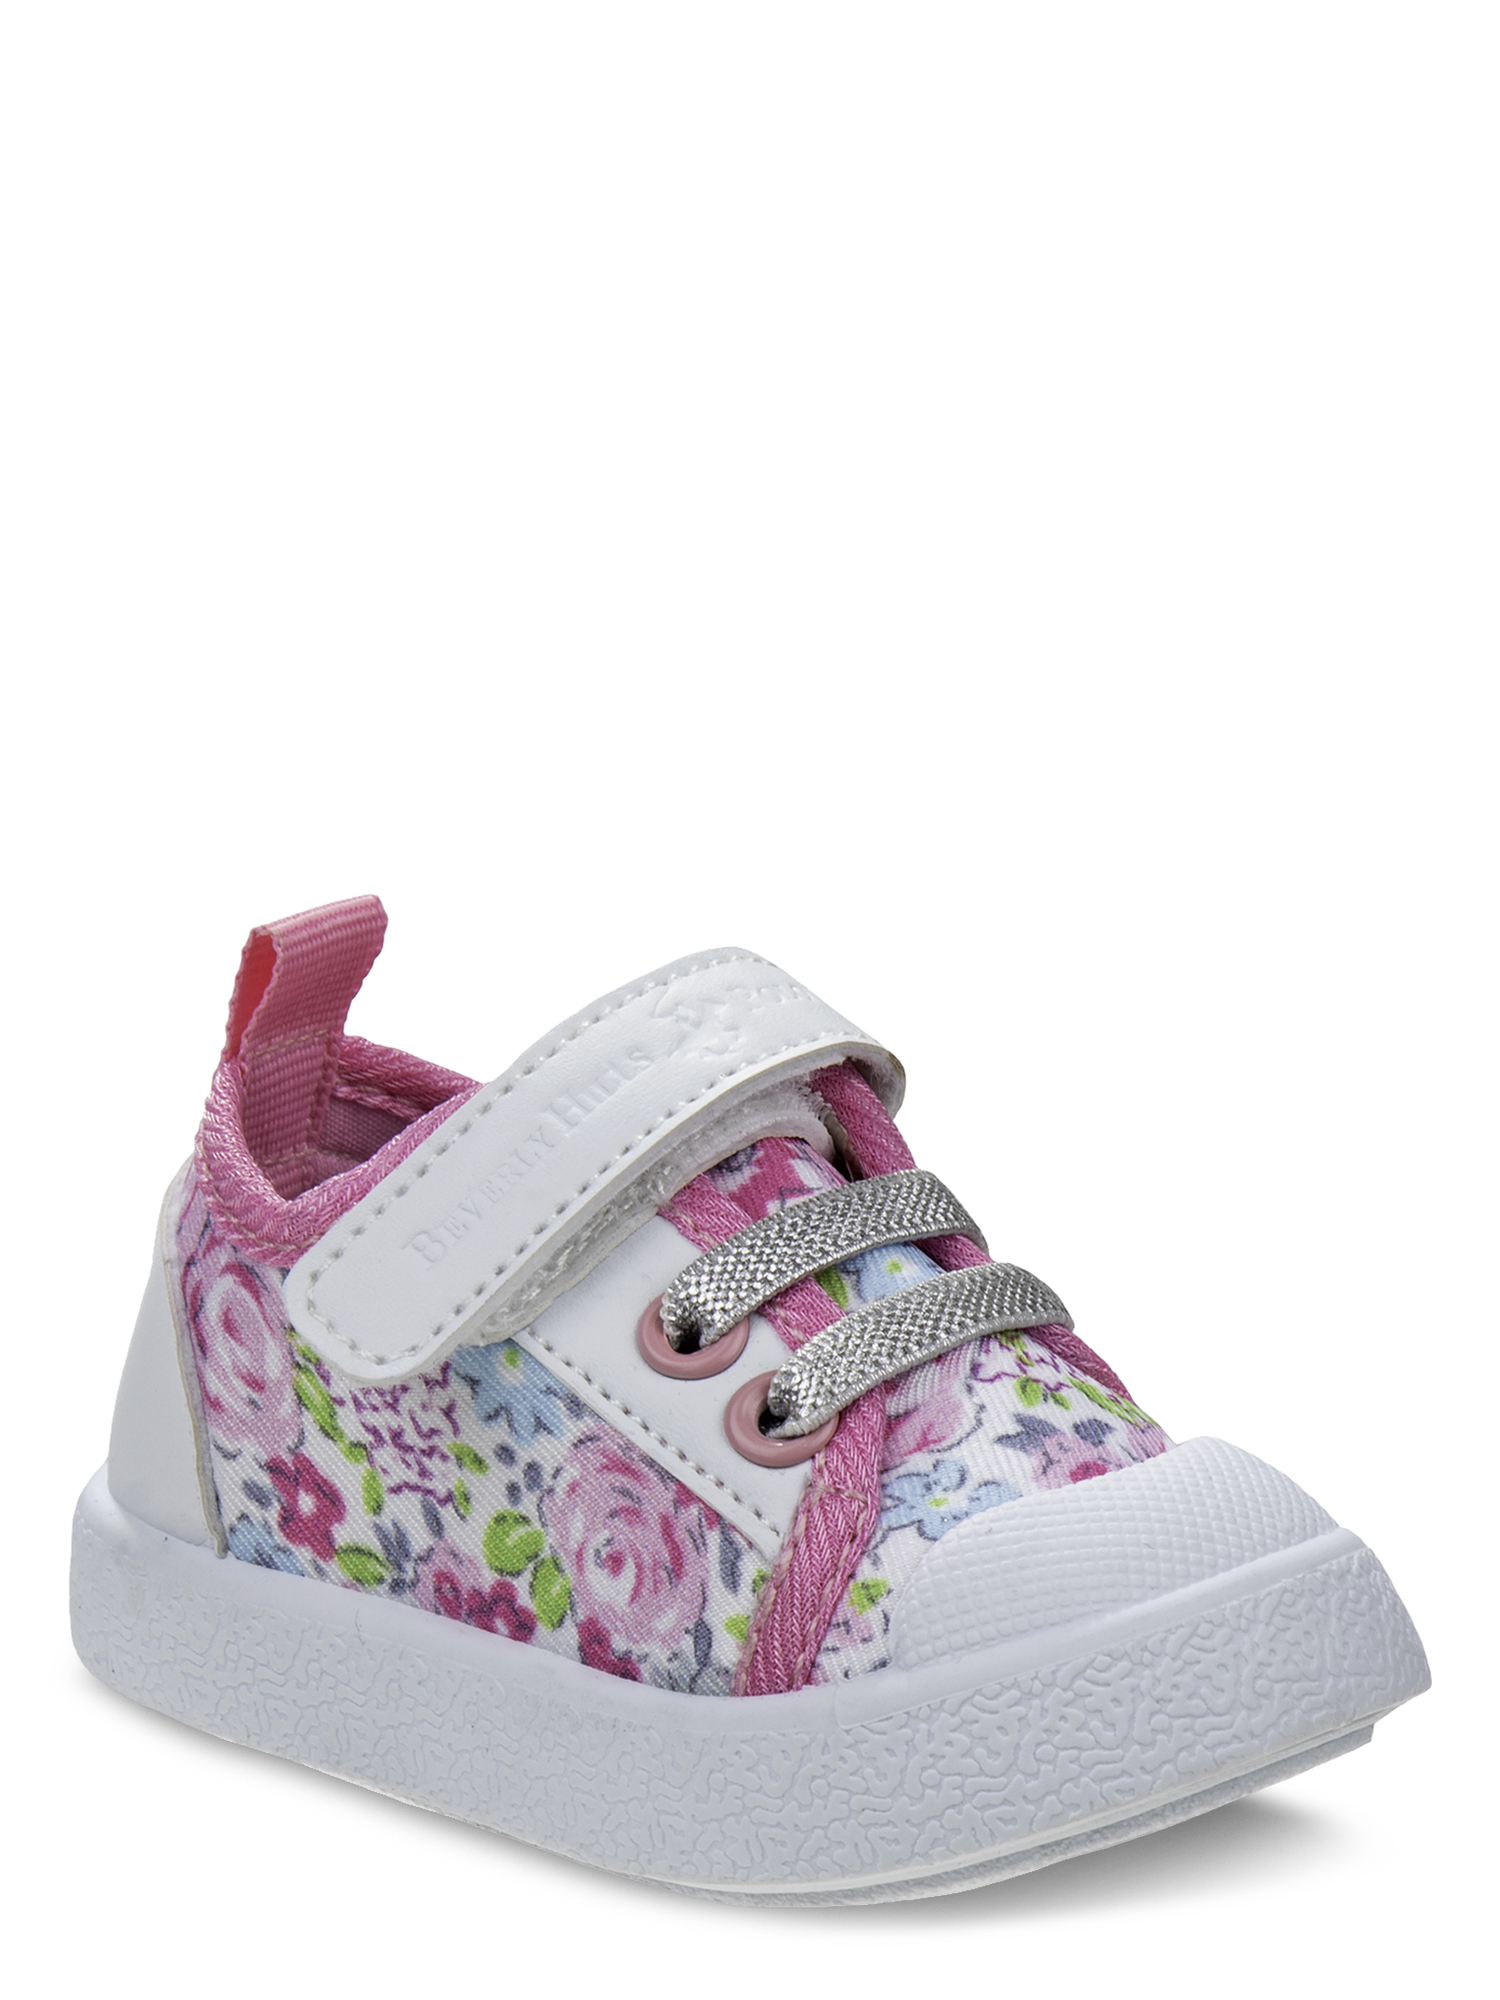 Toddler Beverly Hills Polo Club Girls High Top Sneaker